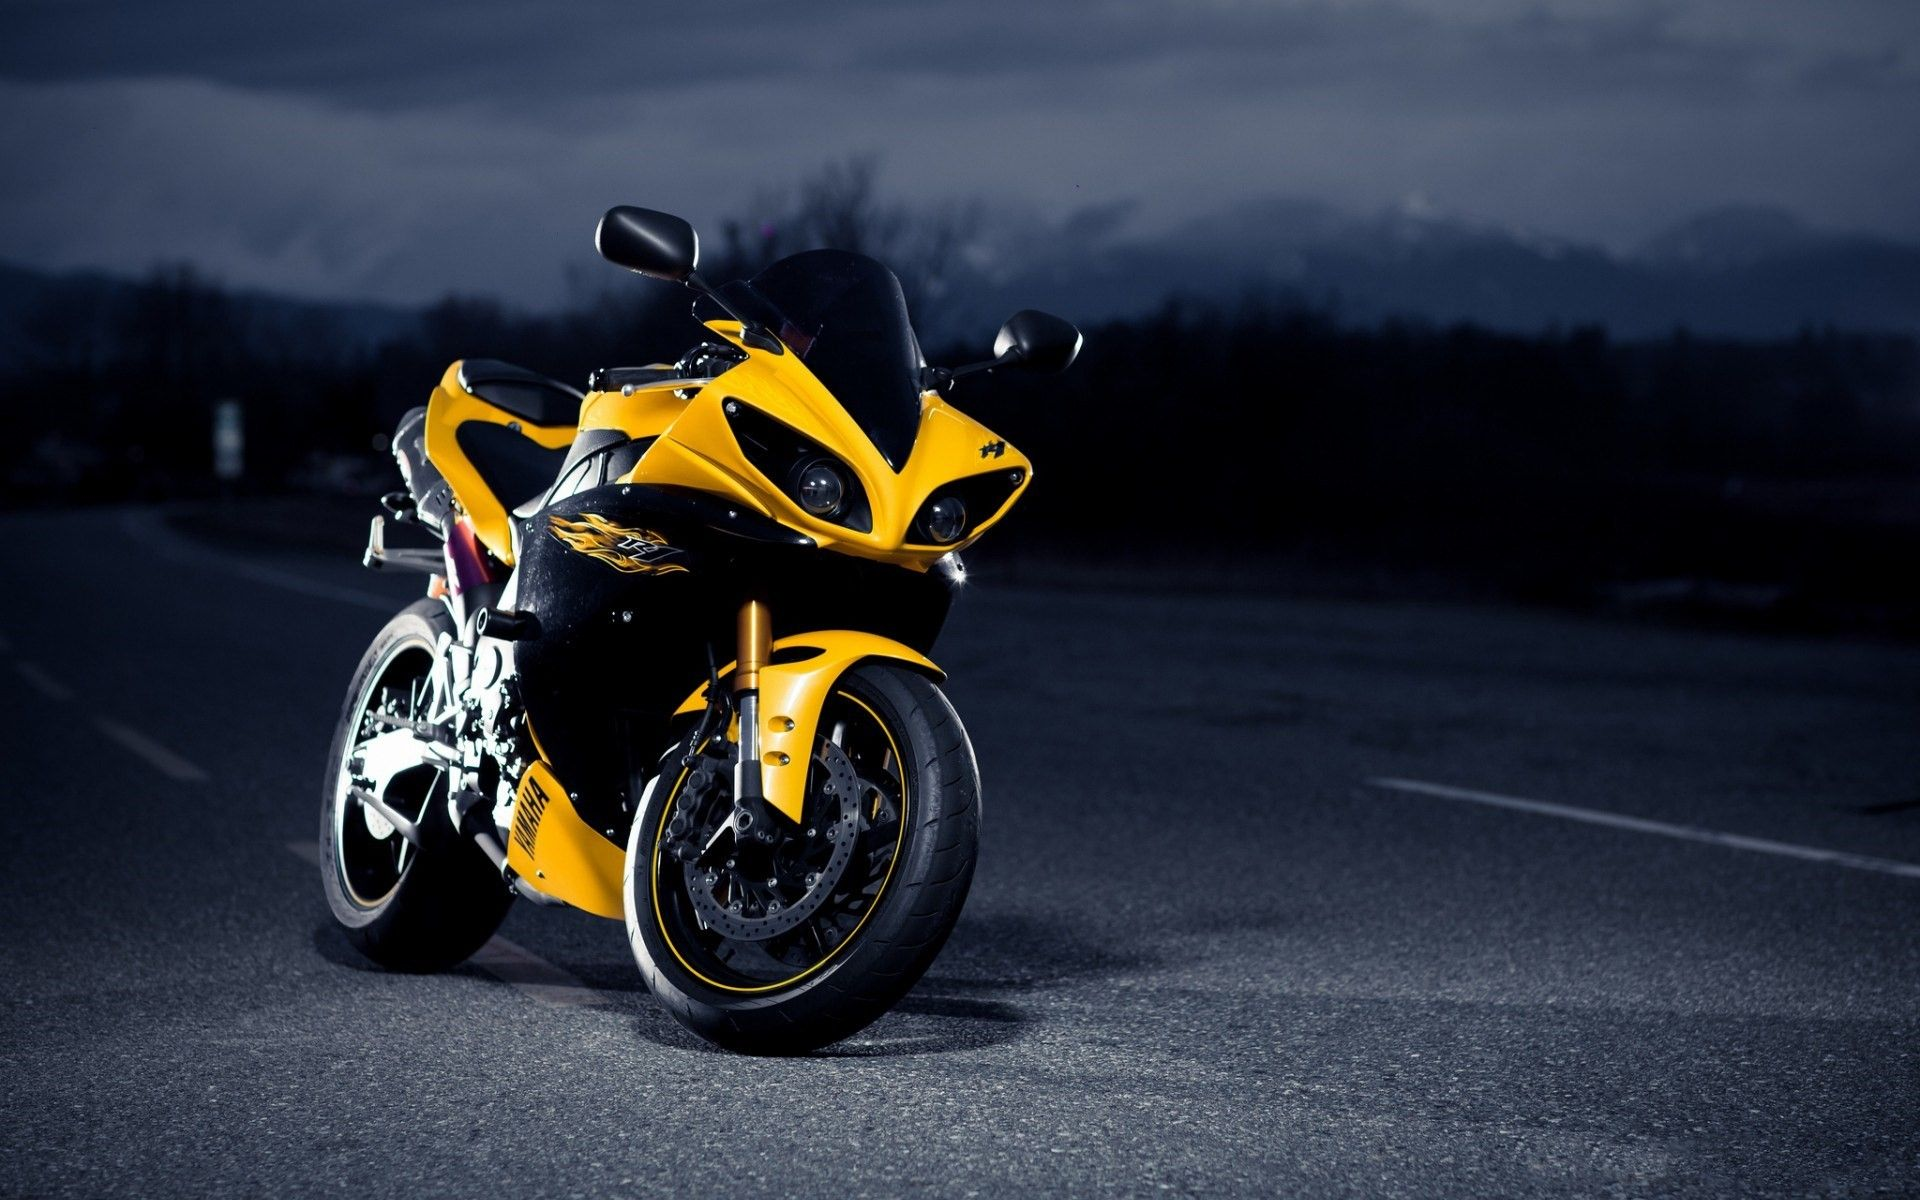 R15 Bike Wallpaper Hd 1920x1200 With Images Yamaha Bikes